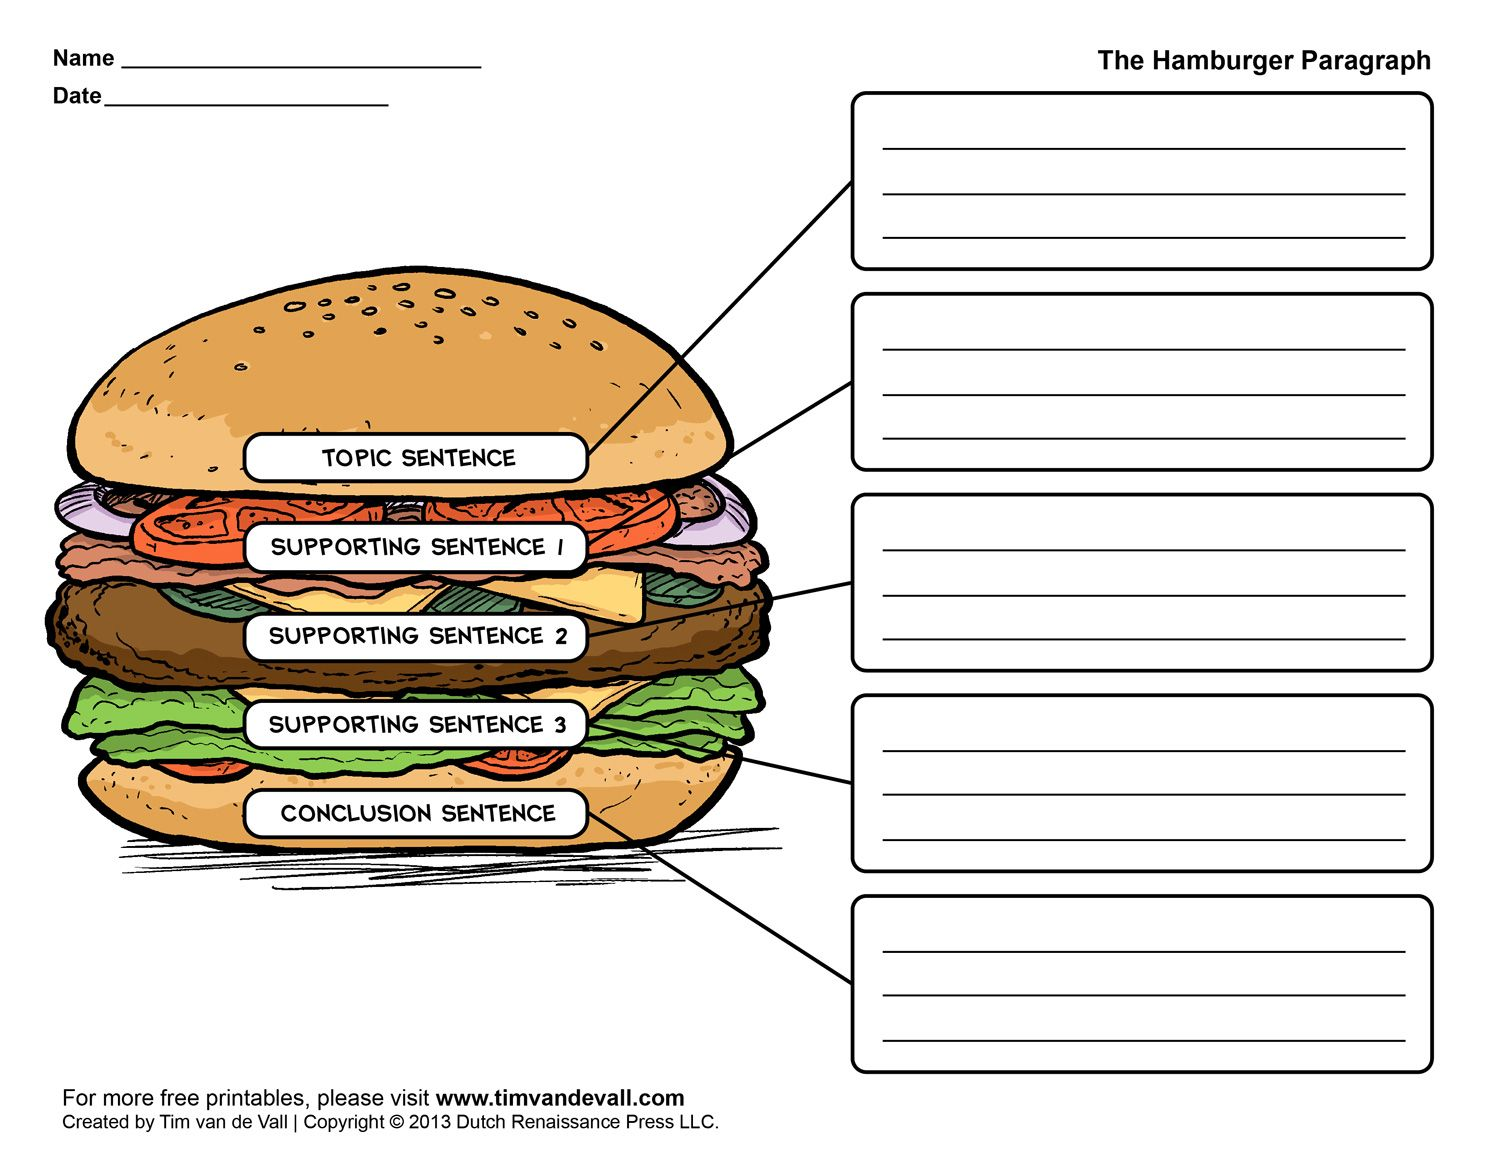 Worksheets Writing Paragraphs Worksheet hamburger paragraph worksheet language arts printables literacy printables